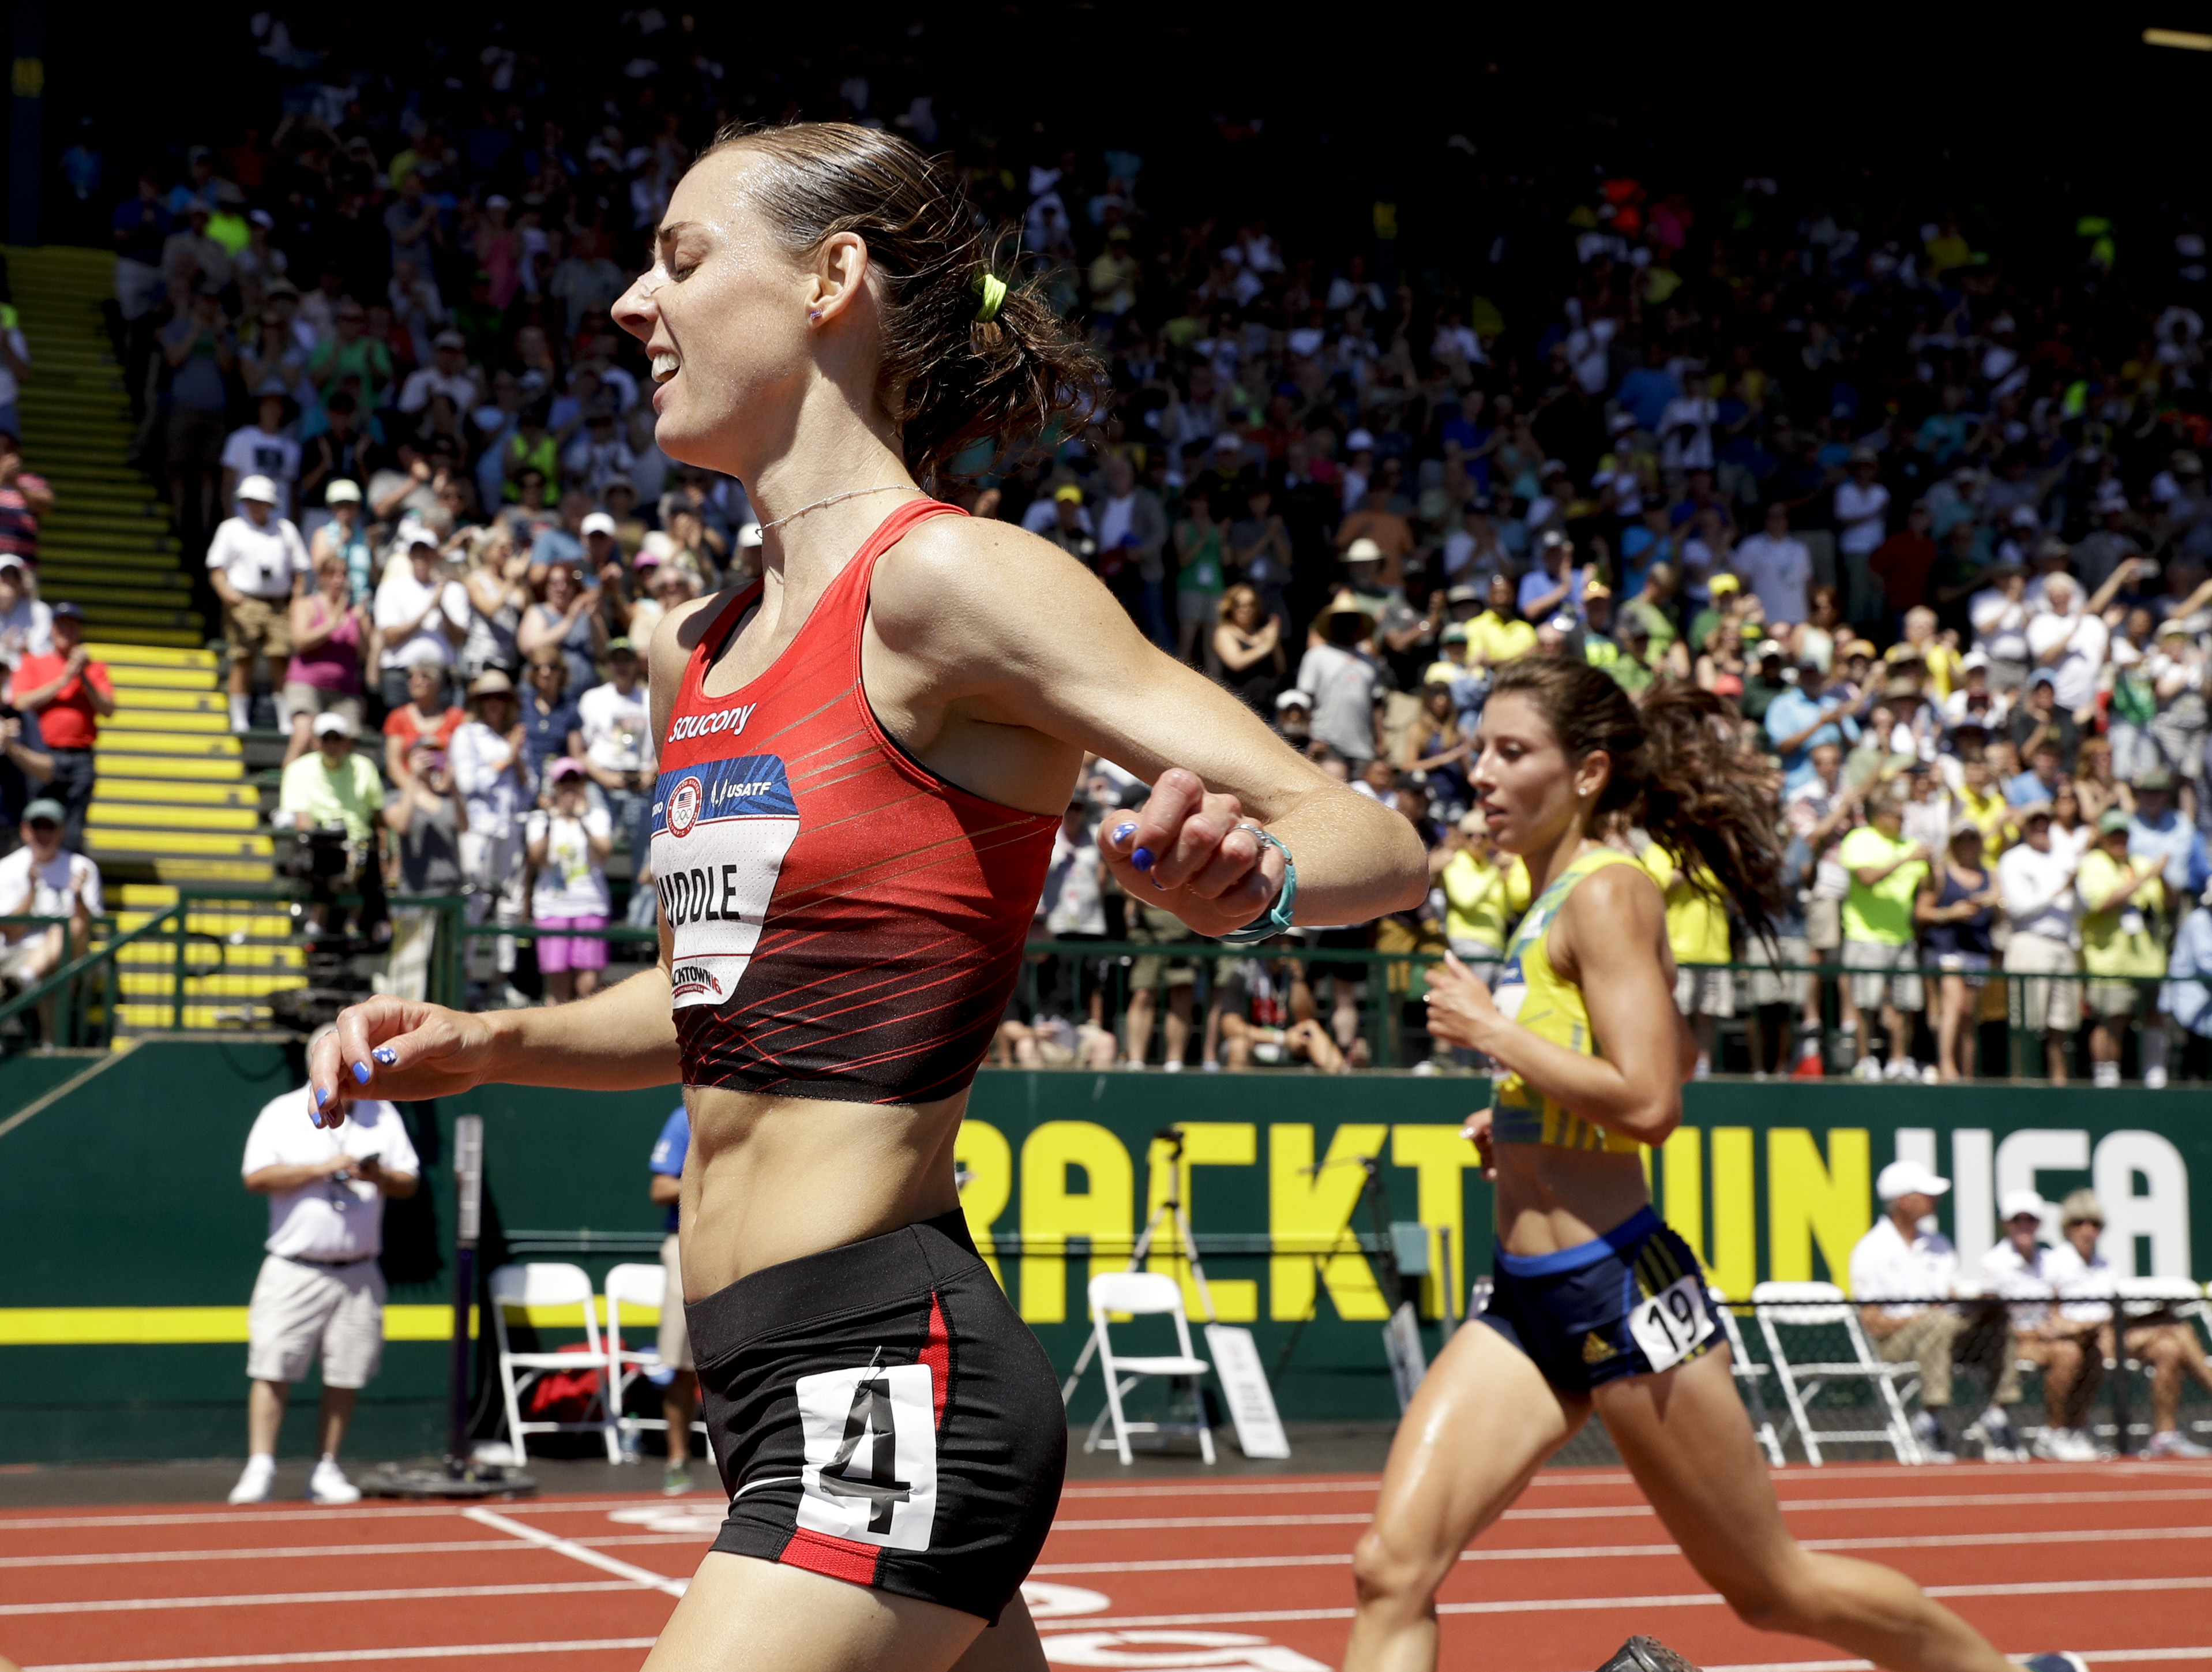 Molly Huddle wins the women's 10,000-meter run final at the U.S. Olympic Track and Field Trials, Saturday, July 2, 2016, in Eugene Ore.(AP Photo/Charlie Riedel)